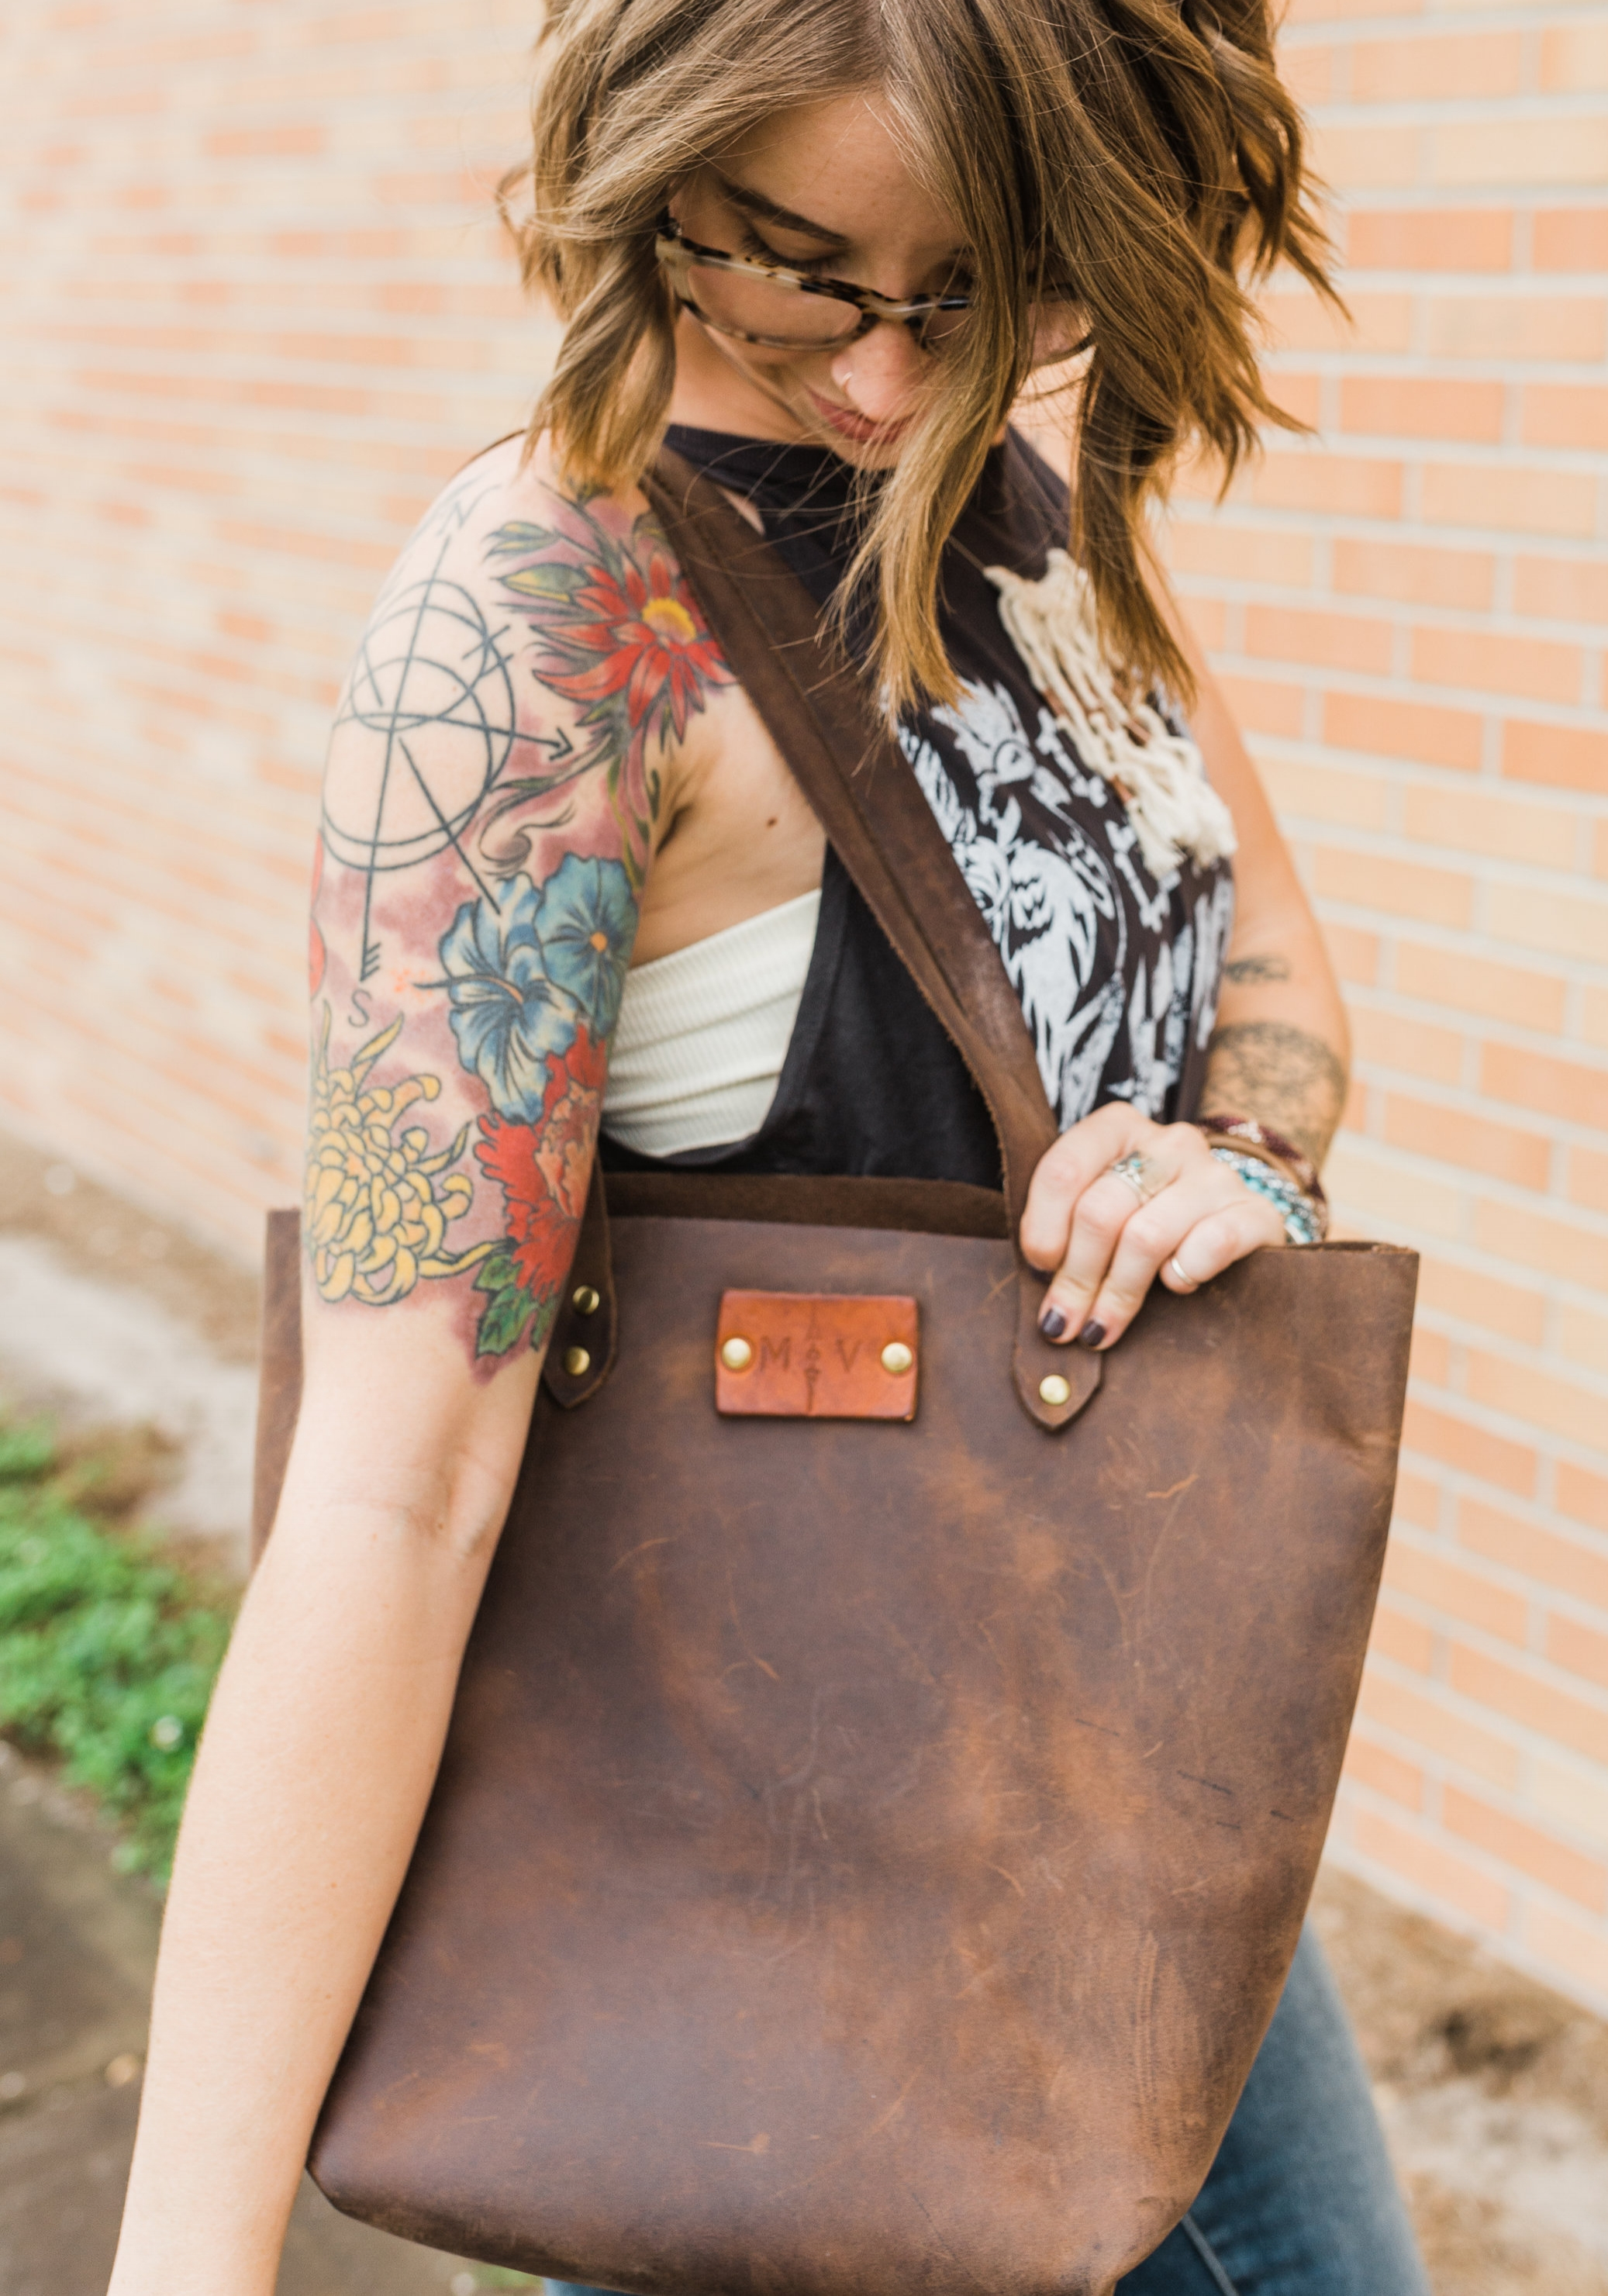 Margaret Vera - These leather goodies are all designed by Meg, herself! These hand crafted totes, wallets, and more are made from reclaimed leather. My bag is the grace tote and has started to wear in so well! Her products are timeless and made to last.Insta: @shopmargaretveraShop her amazing leather goods at https://margaretvera.com/collections/all!